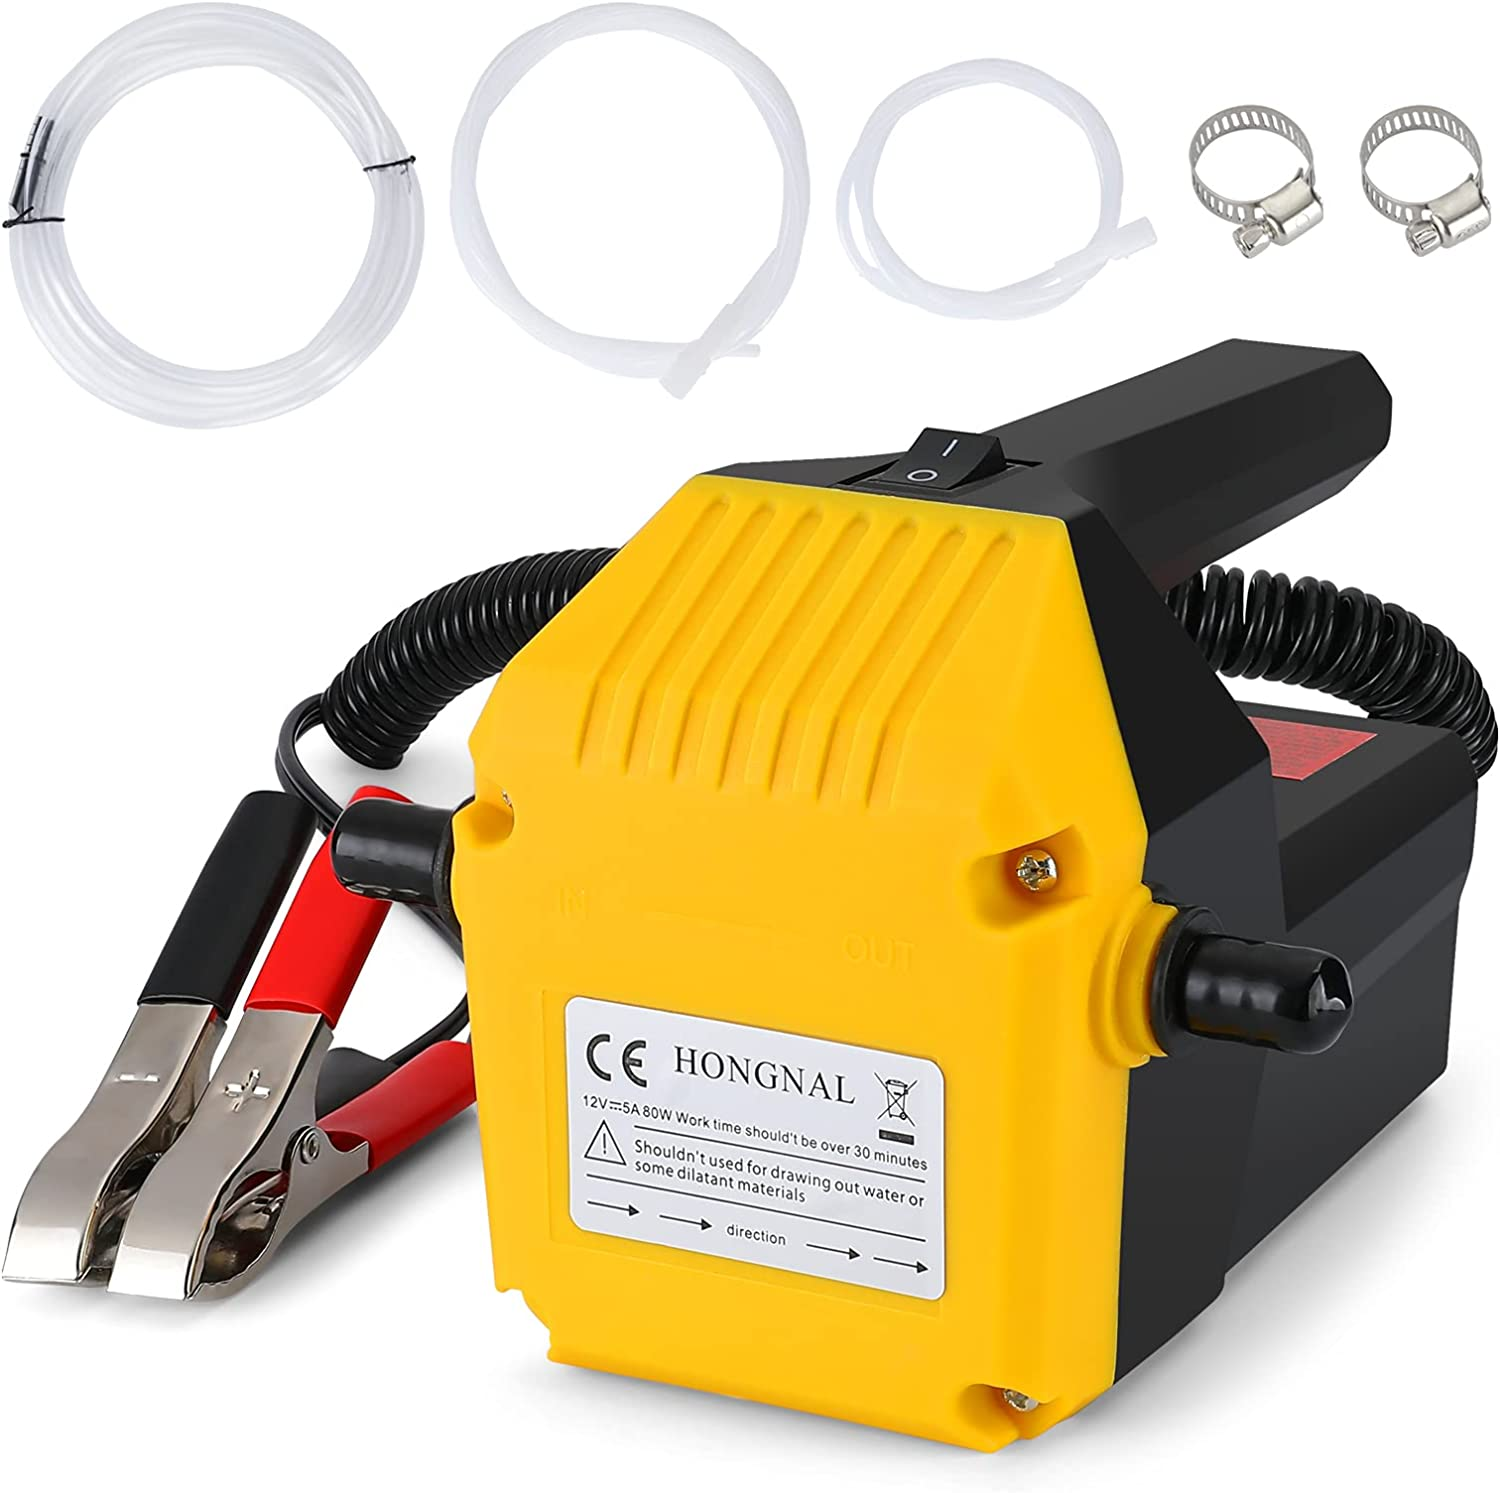 HONGNAL Special price for a limited time 80w Oil Change Pump Direct sale of manufacturer 6.56ft Outle Electric with Extractor